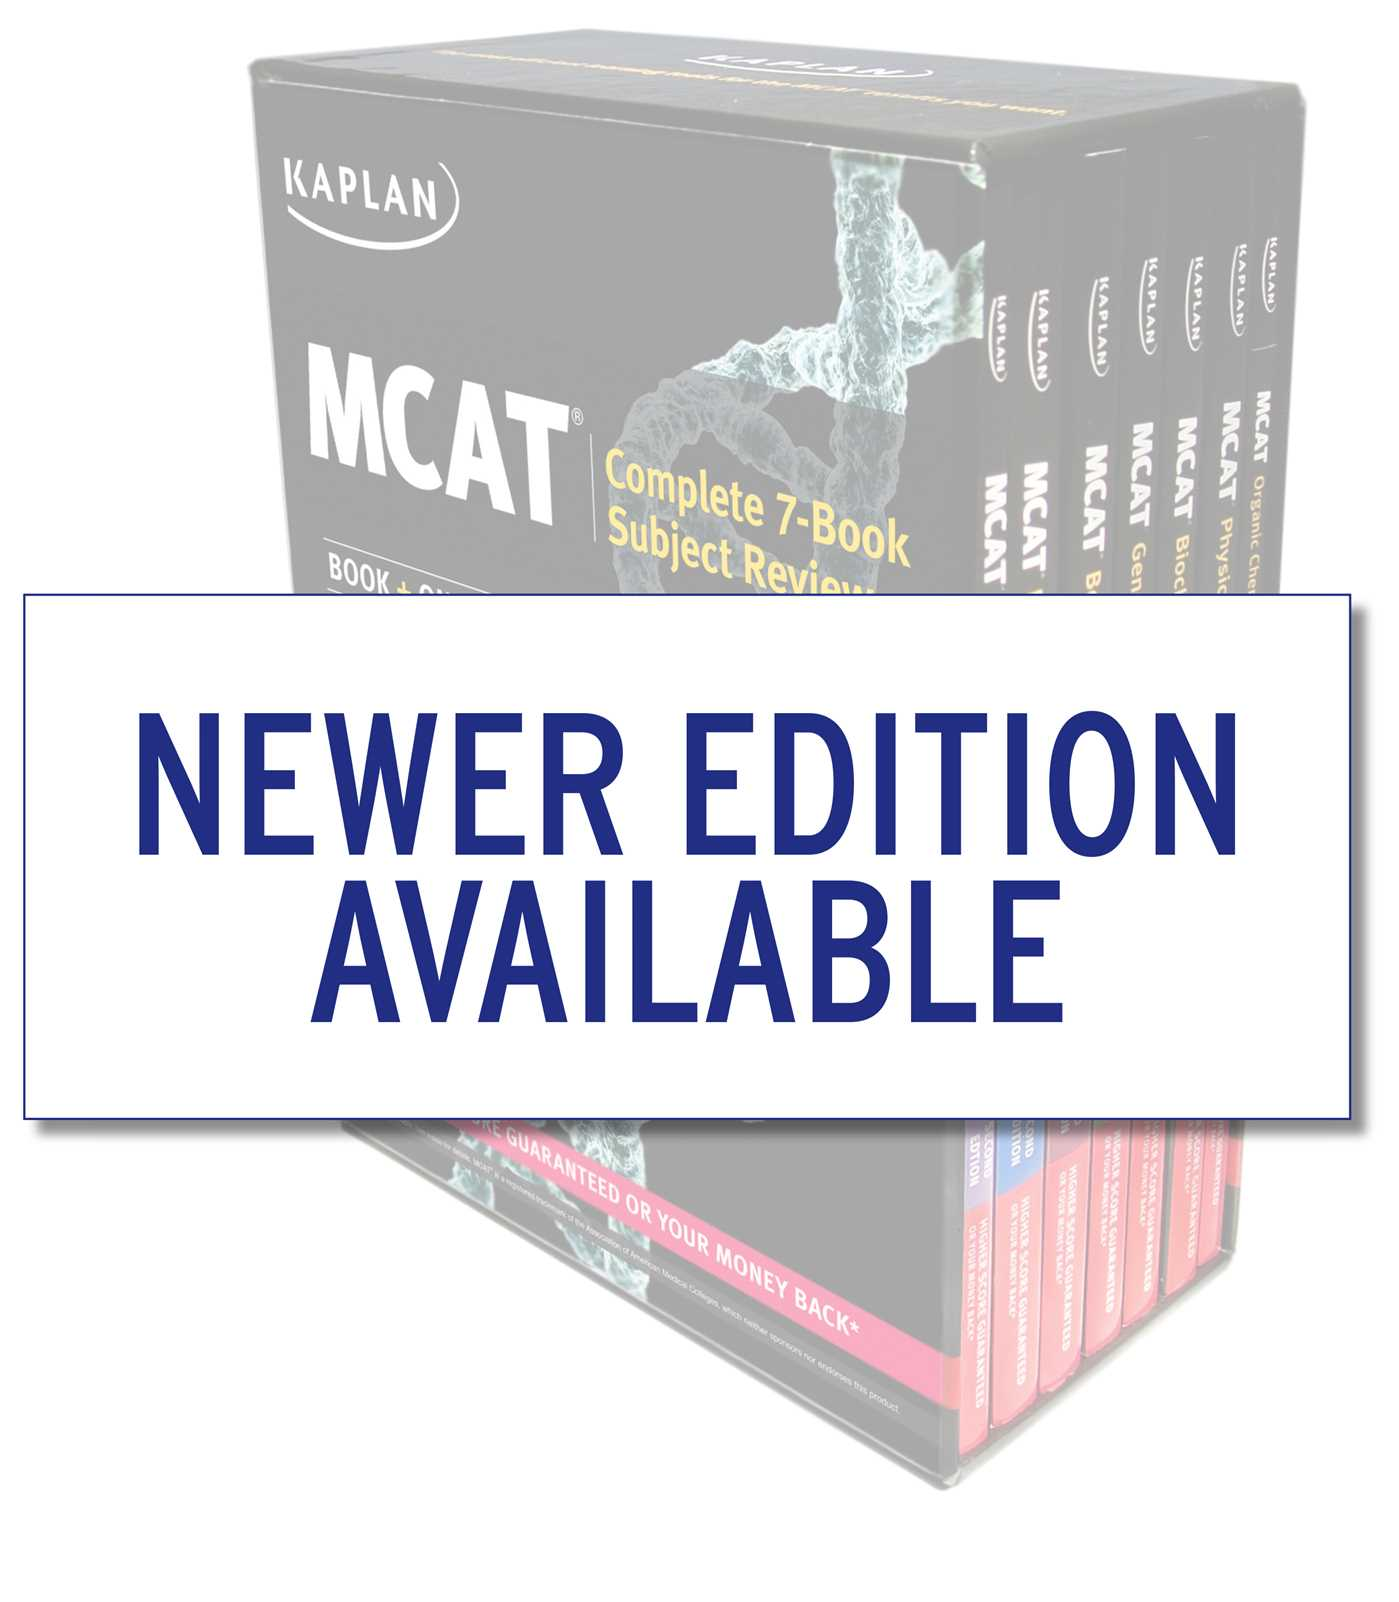 Kaplan-mcat-complete-7-book-subject-review-9781625231277_hr